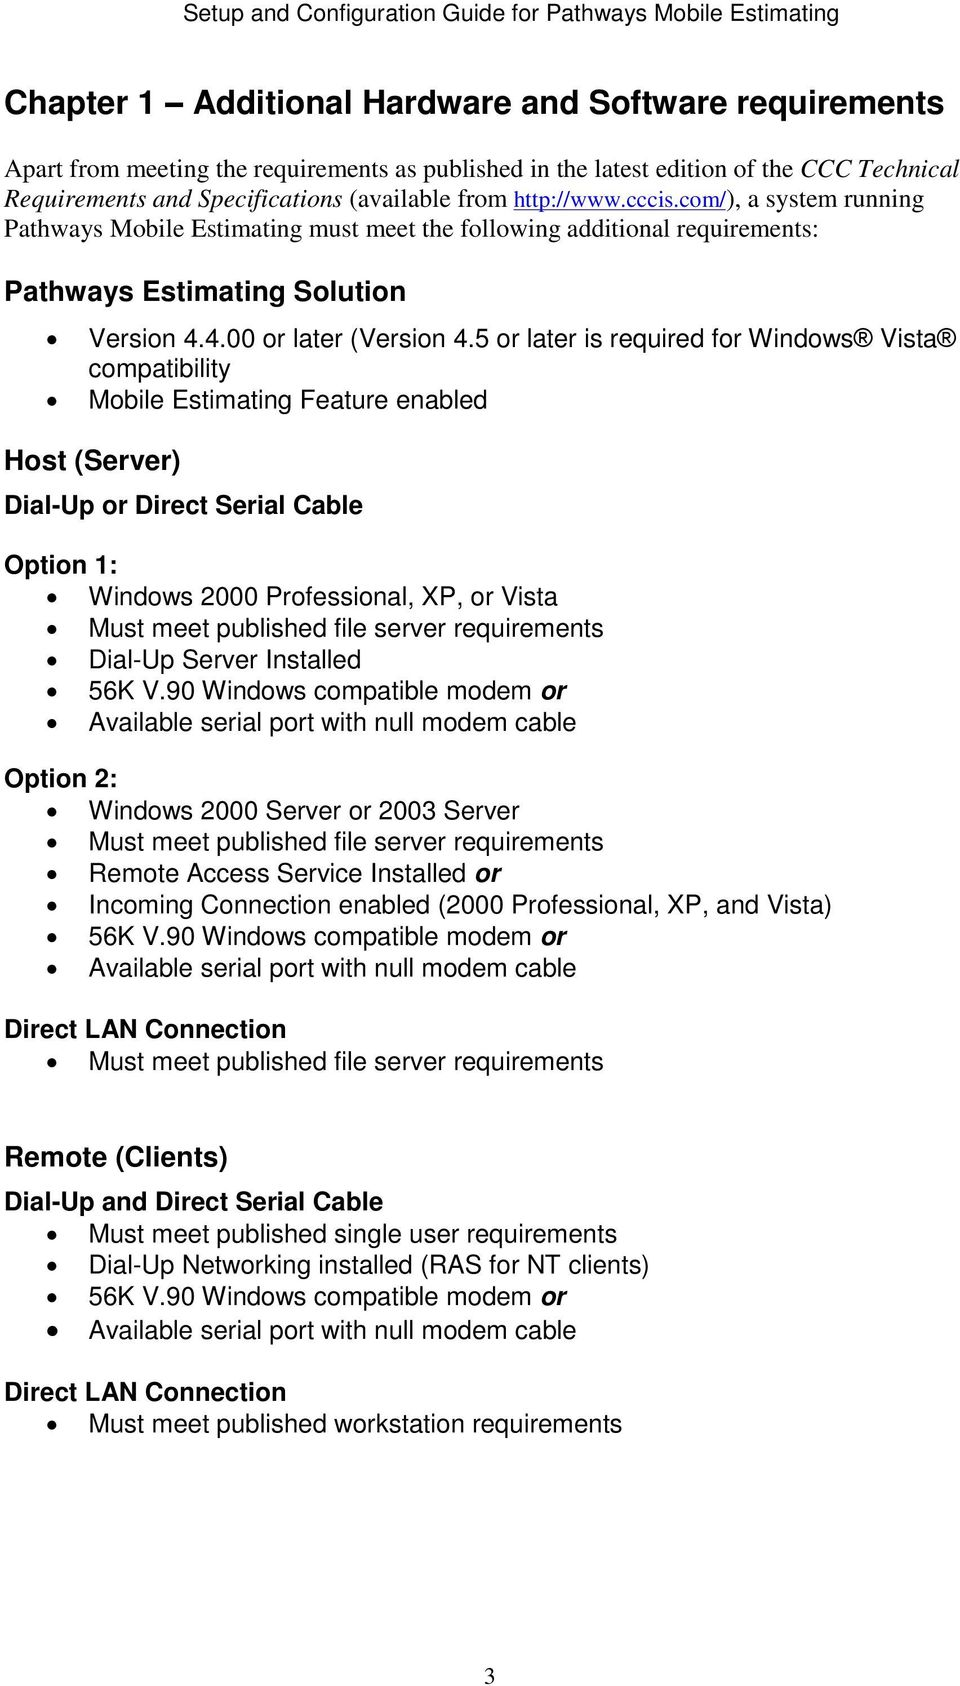 5 or later is required for Windows Vista compatibility Mobile Estimating Feature enabled Host (Server) Dial-Up or Direct Serial Cable Option 1: Windows 2000 Professional, XP, or Vista Must meet